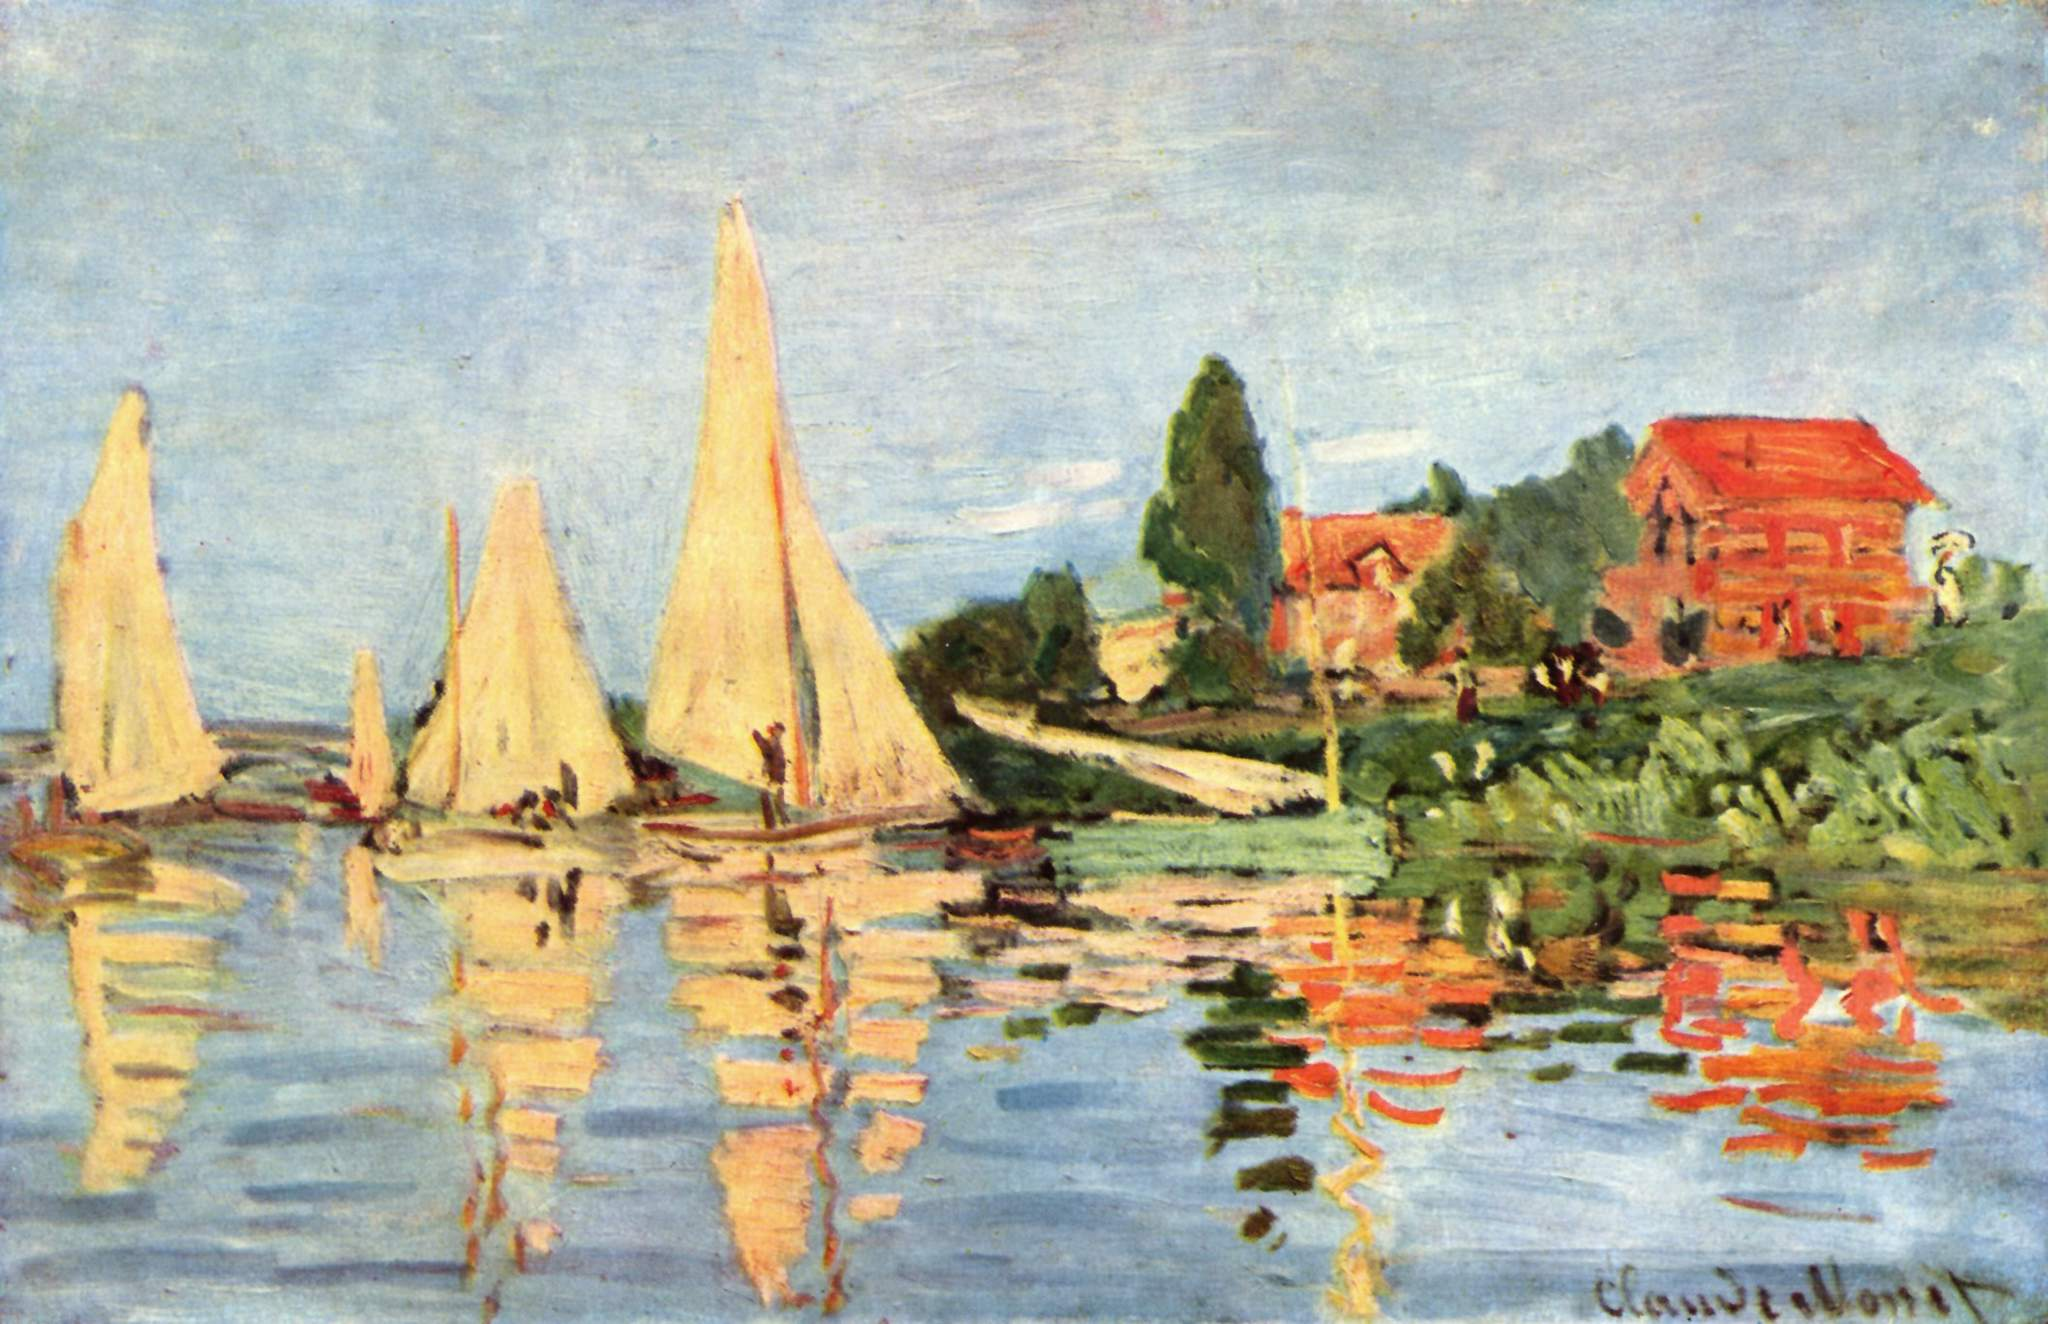 http://upload.wikimedia.org/wikipedia/commons/b/b7/Claude_Monet_042.jpg